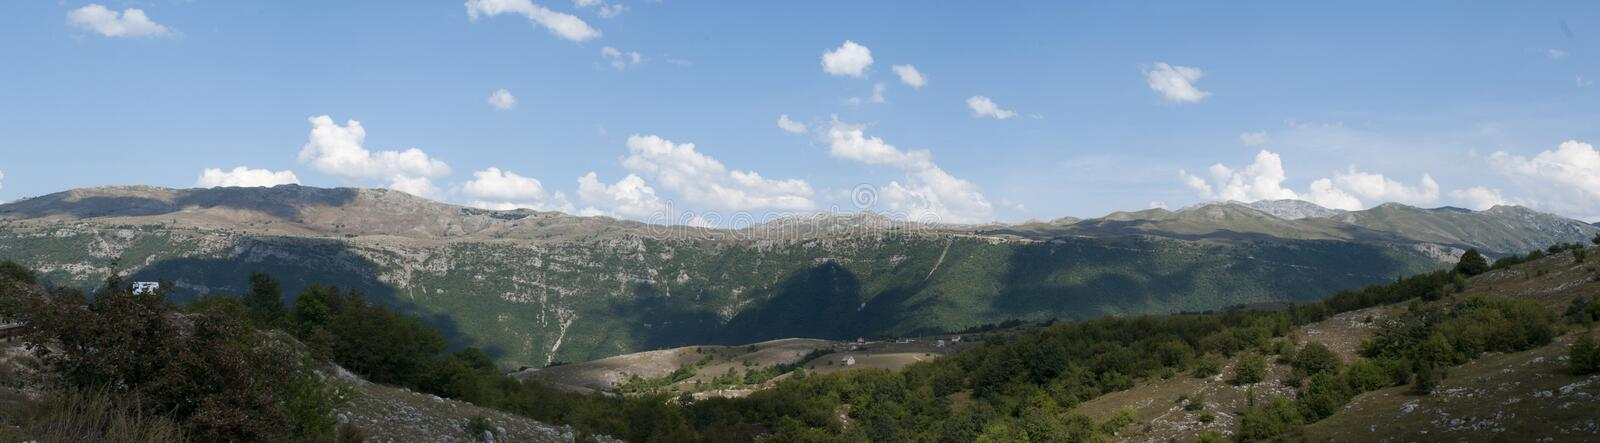 Mountain in Montenegro stock images